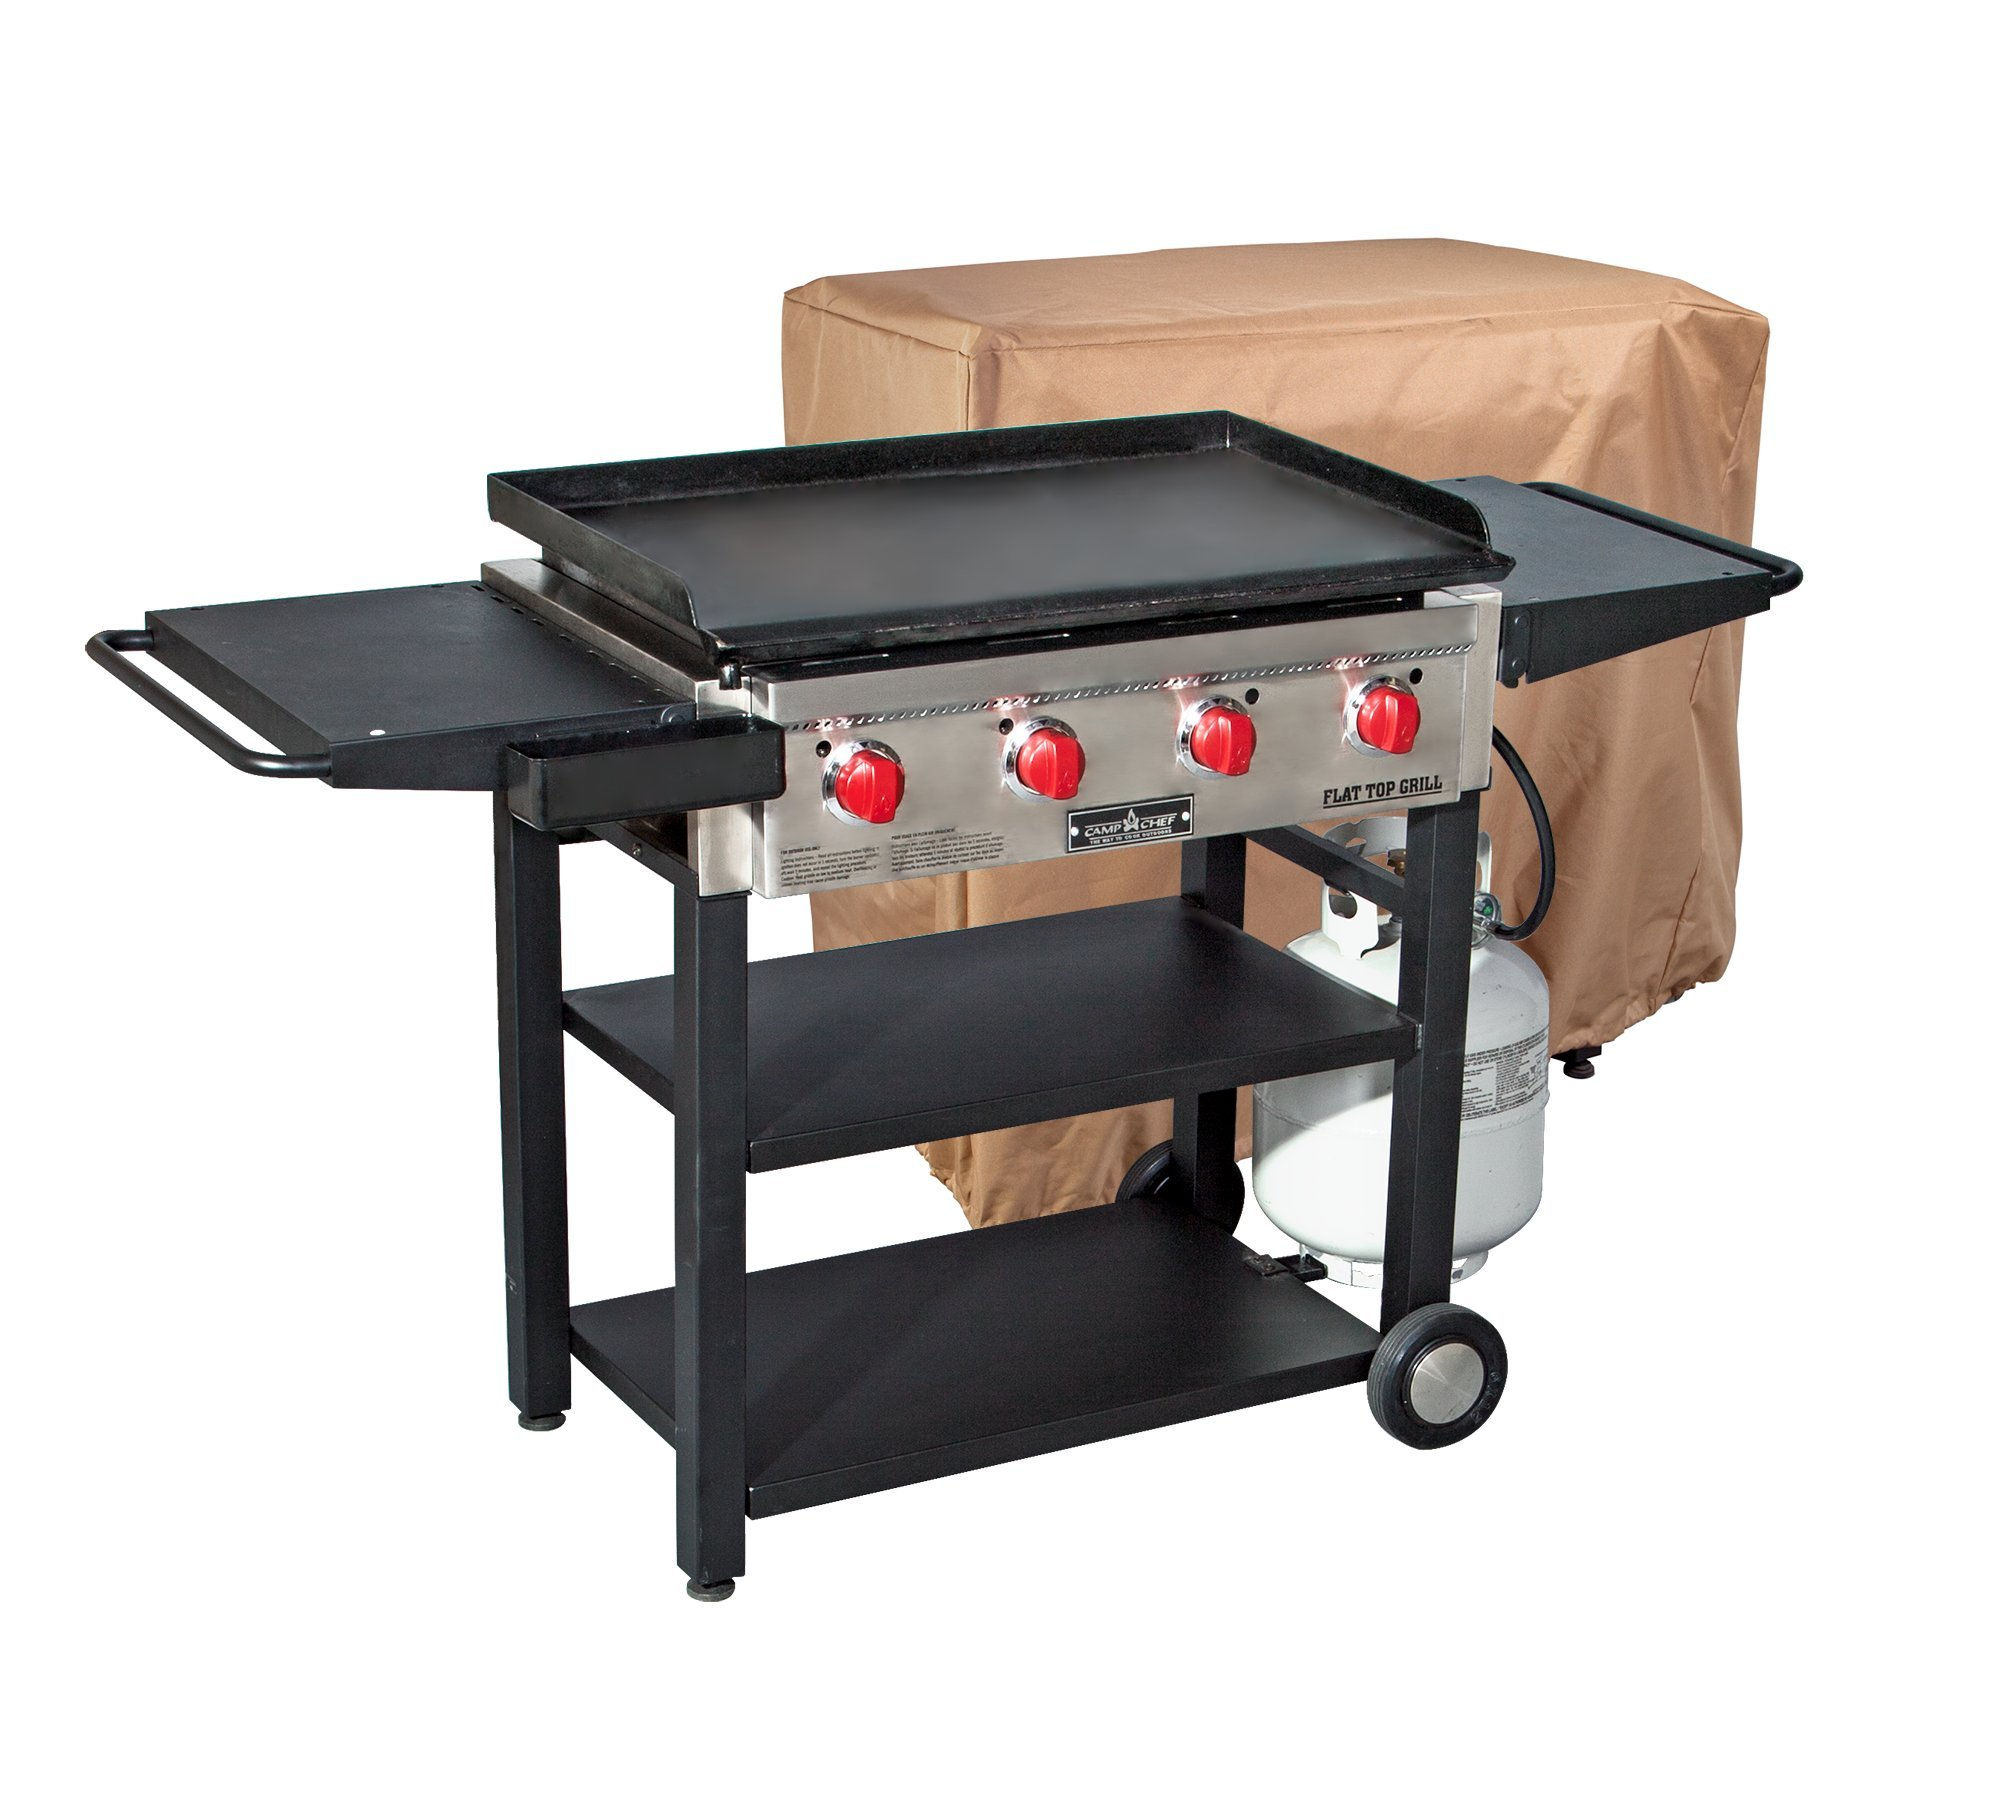 Camp Chef Flat Top Grill 600 with Patio Cover - Bundle by Camp Chef